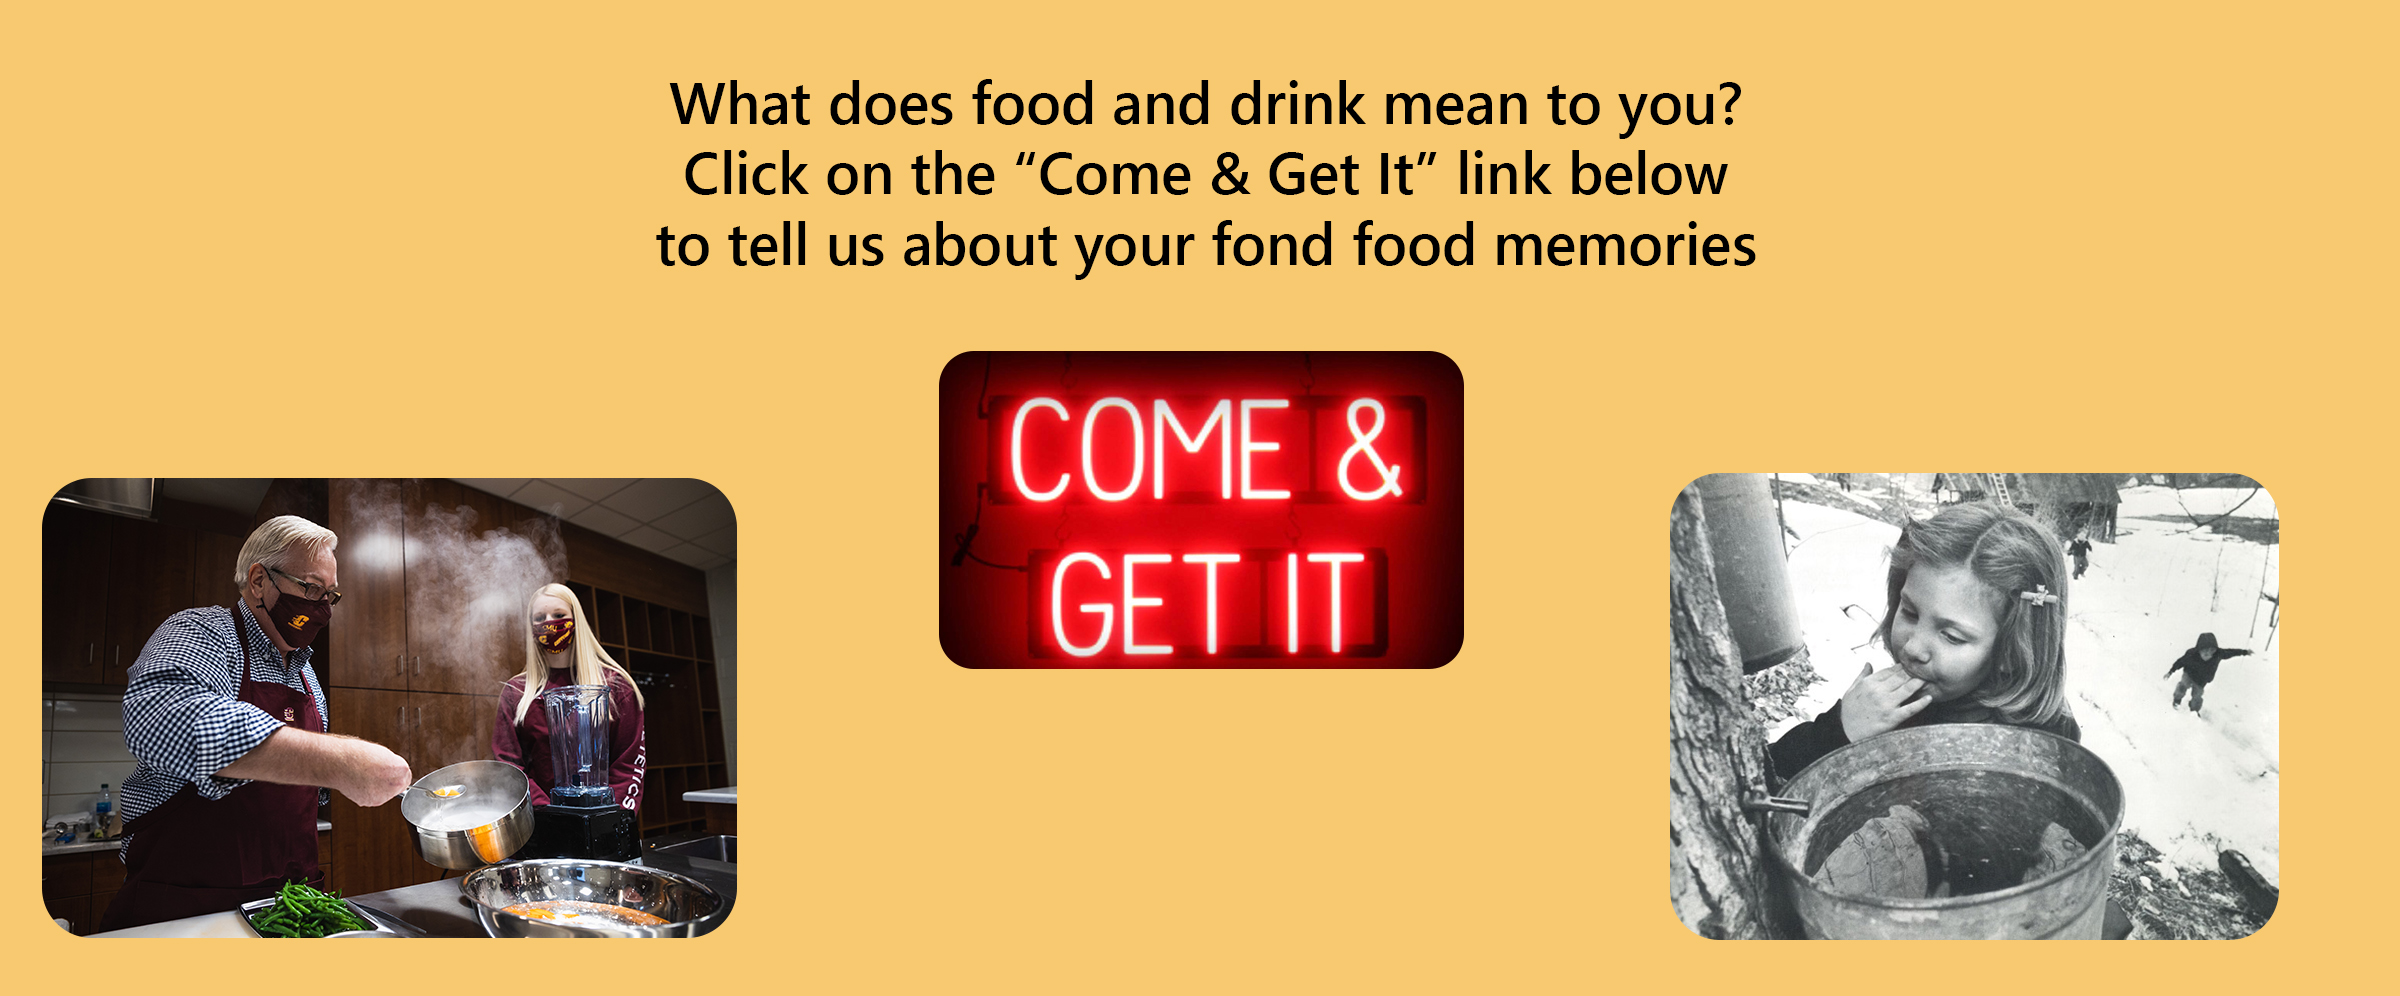 What does food and drink mean to you? Click on the Come and Get It link below to tell us about your fond food memories!